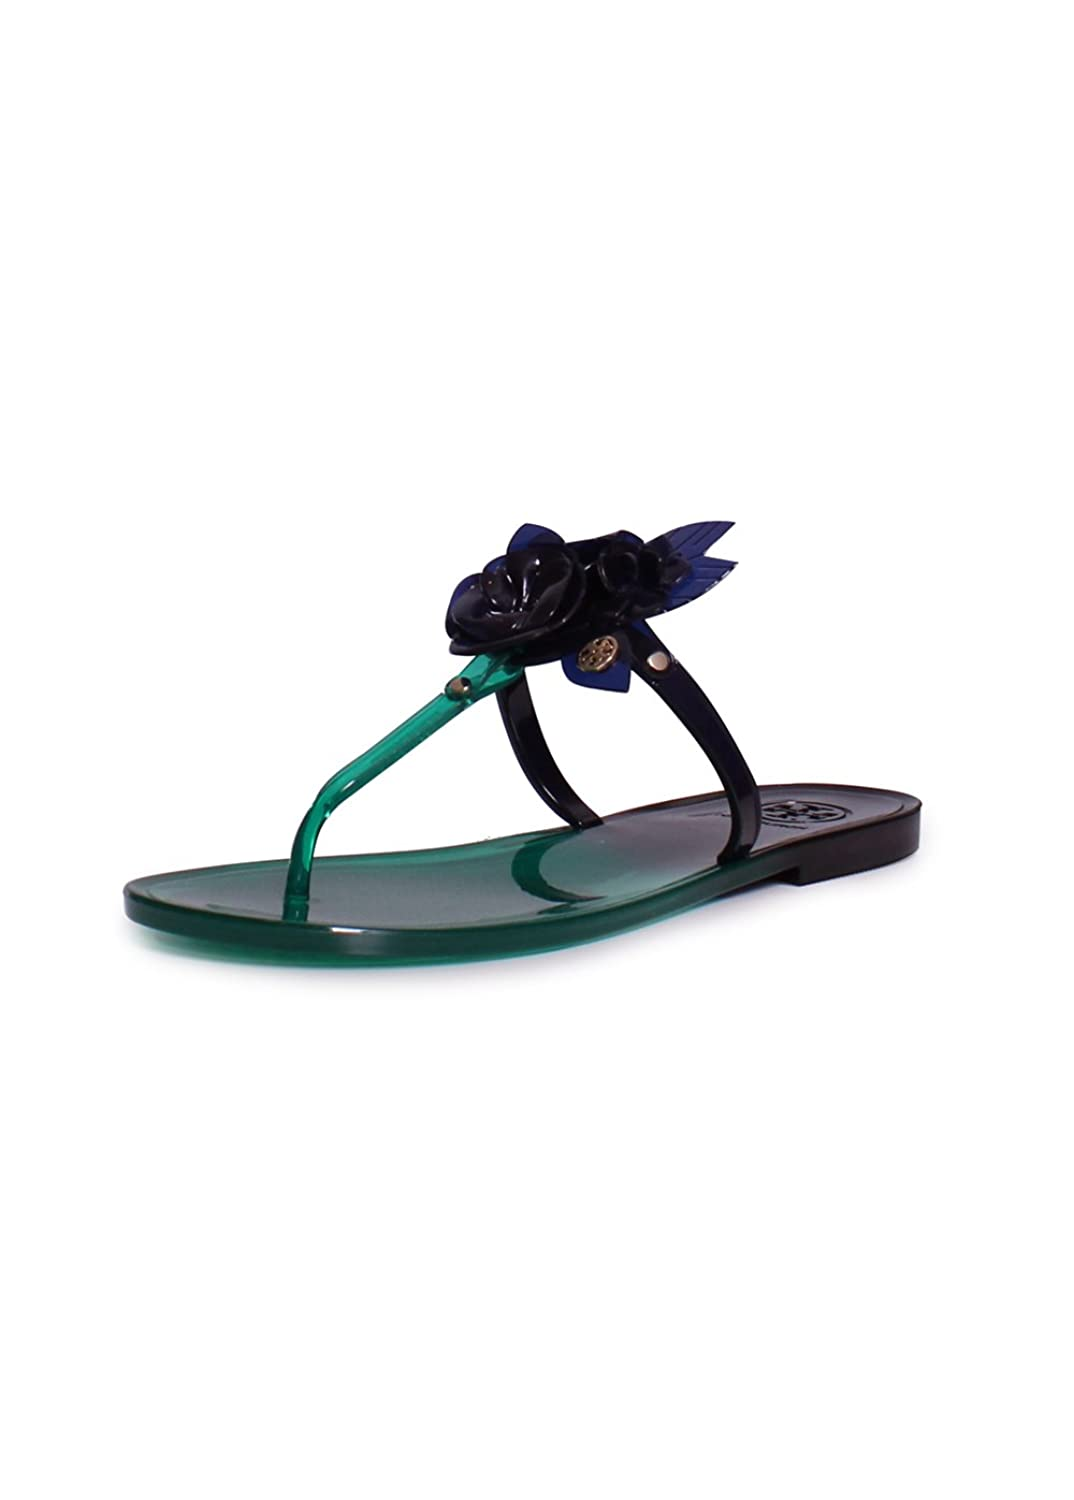 Tory Burch Blossom Dual Tone Jelly Sandal, Emerald Stone/Navy Sea